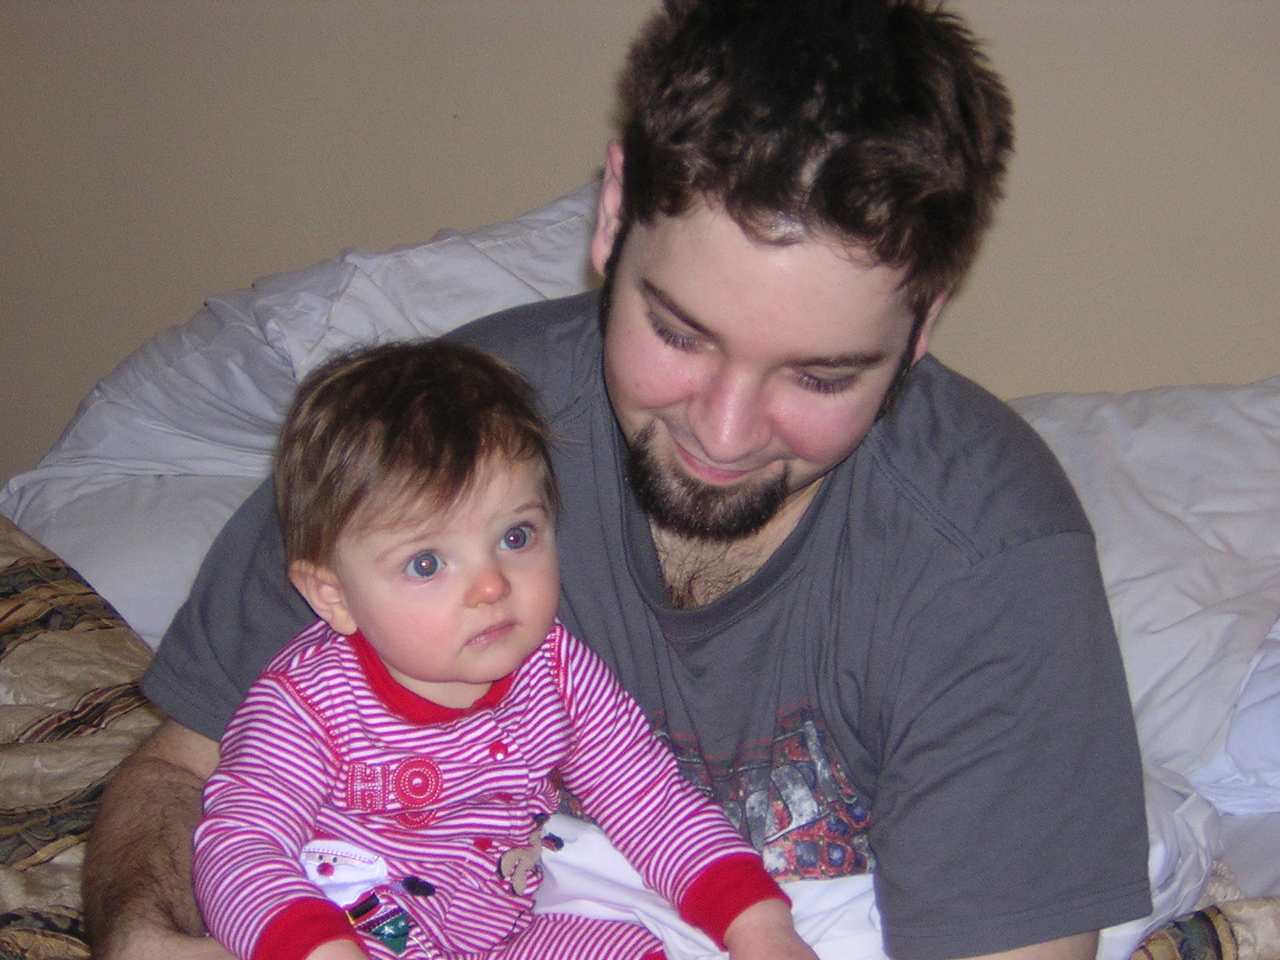 The first time I have ever seen my brother smile when he is woken up.  How could you not, though, being woken up by this little elf!nDSCN6148.JPG